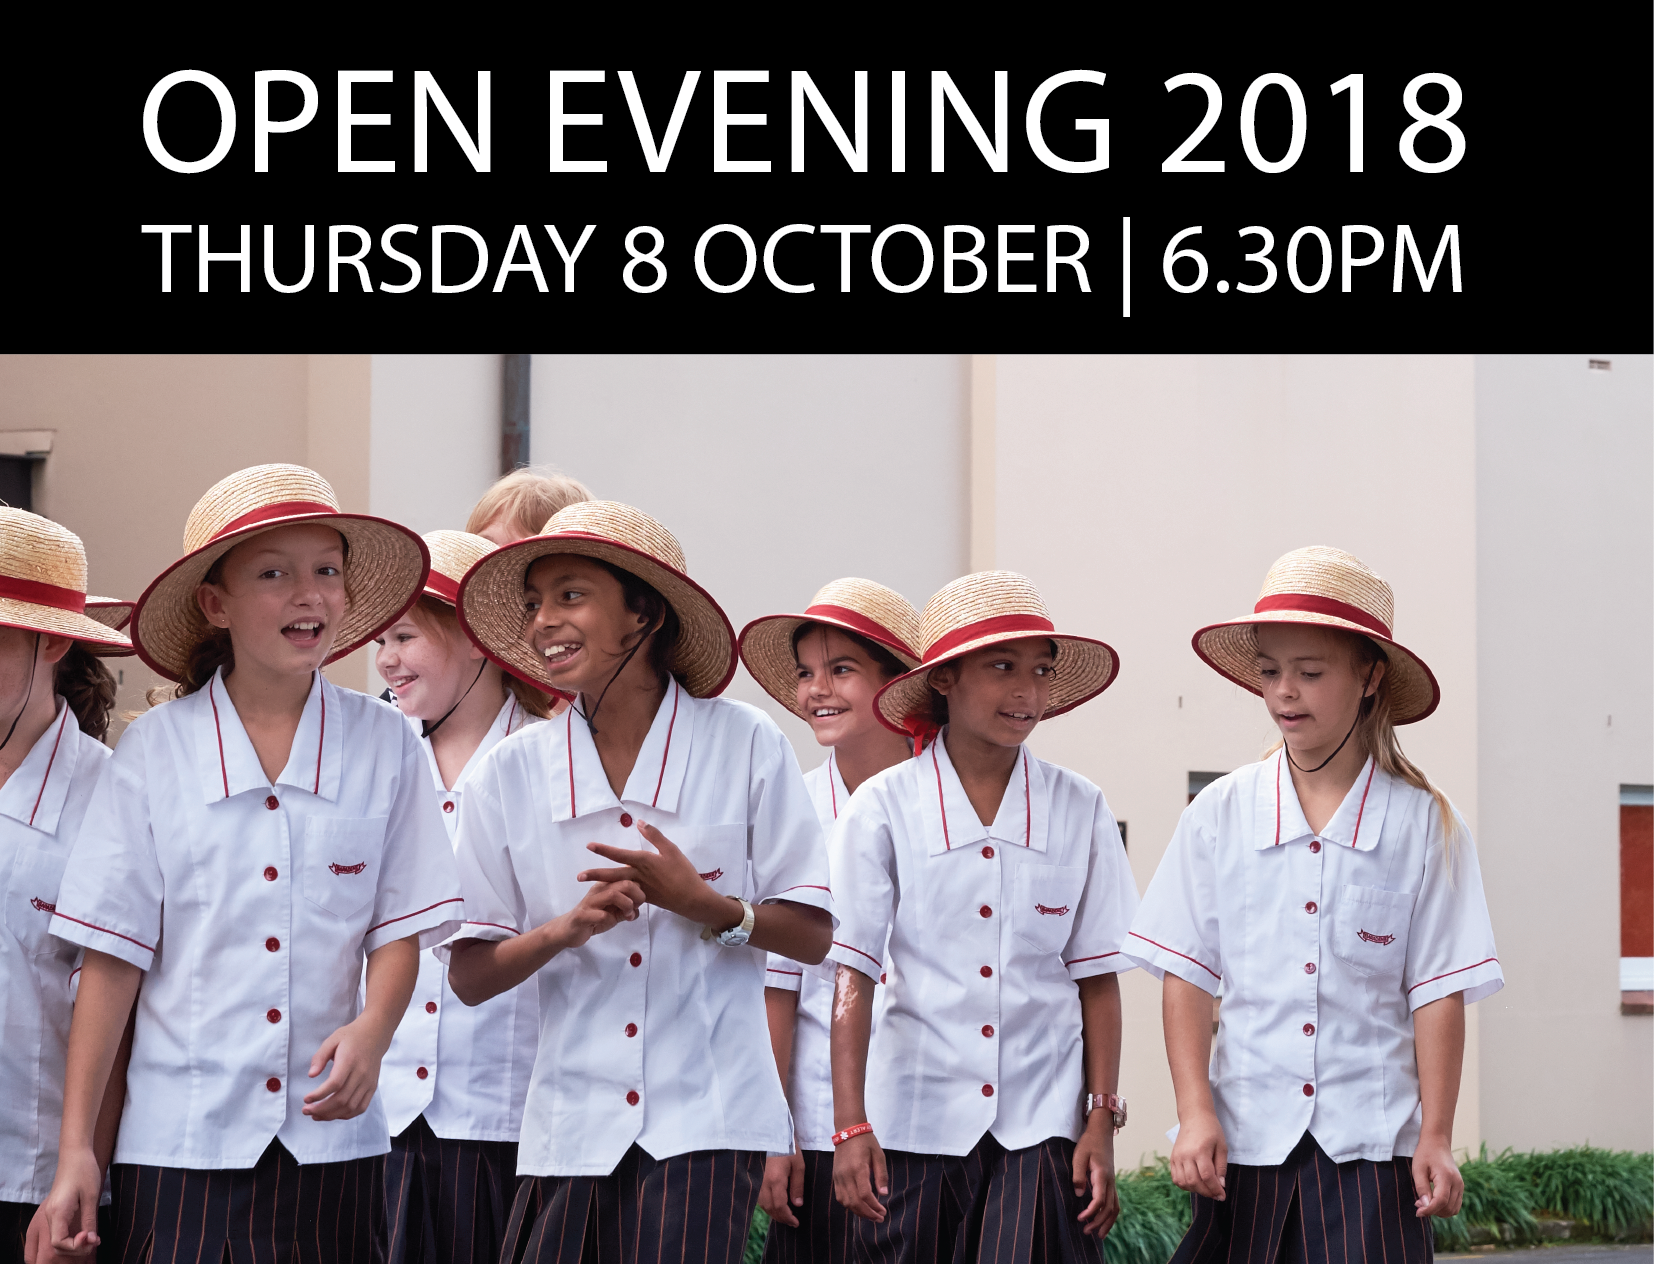 Baradene College Open Evening 2018